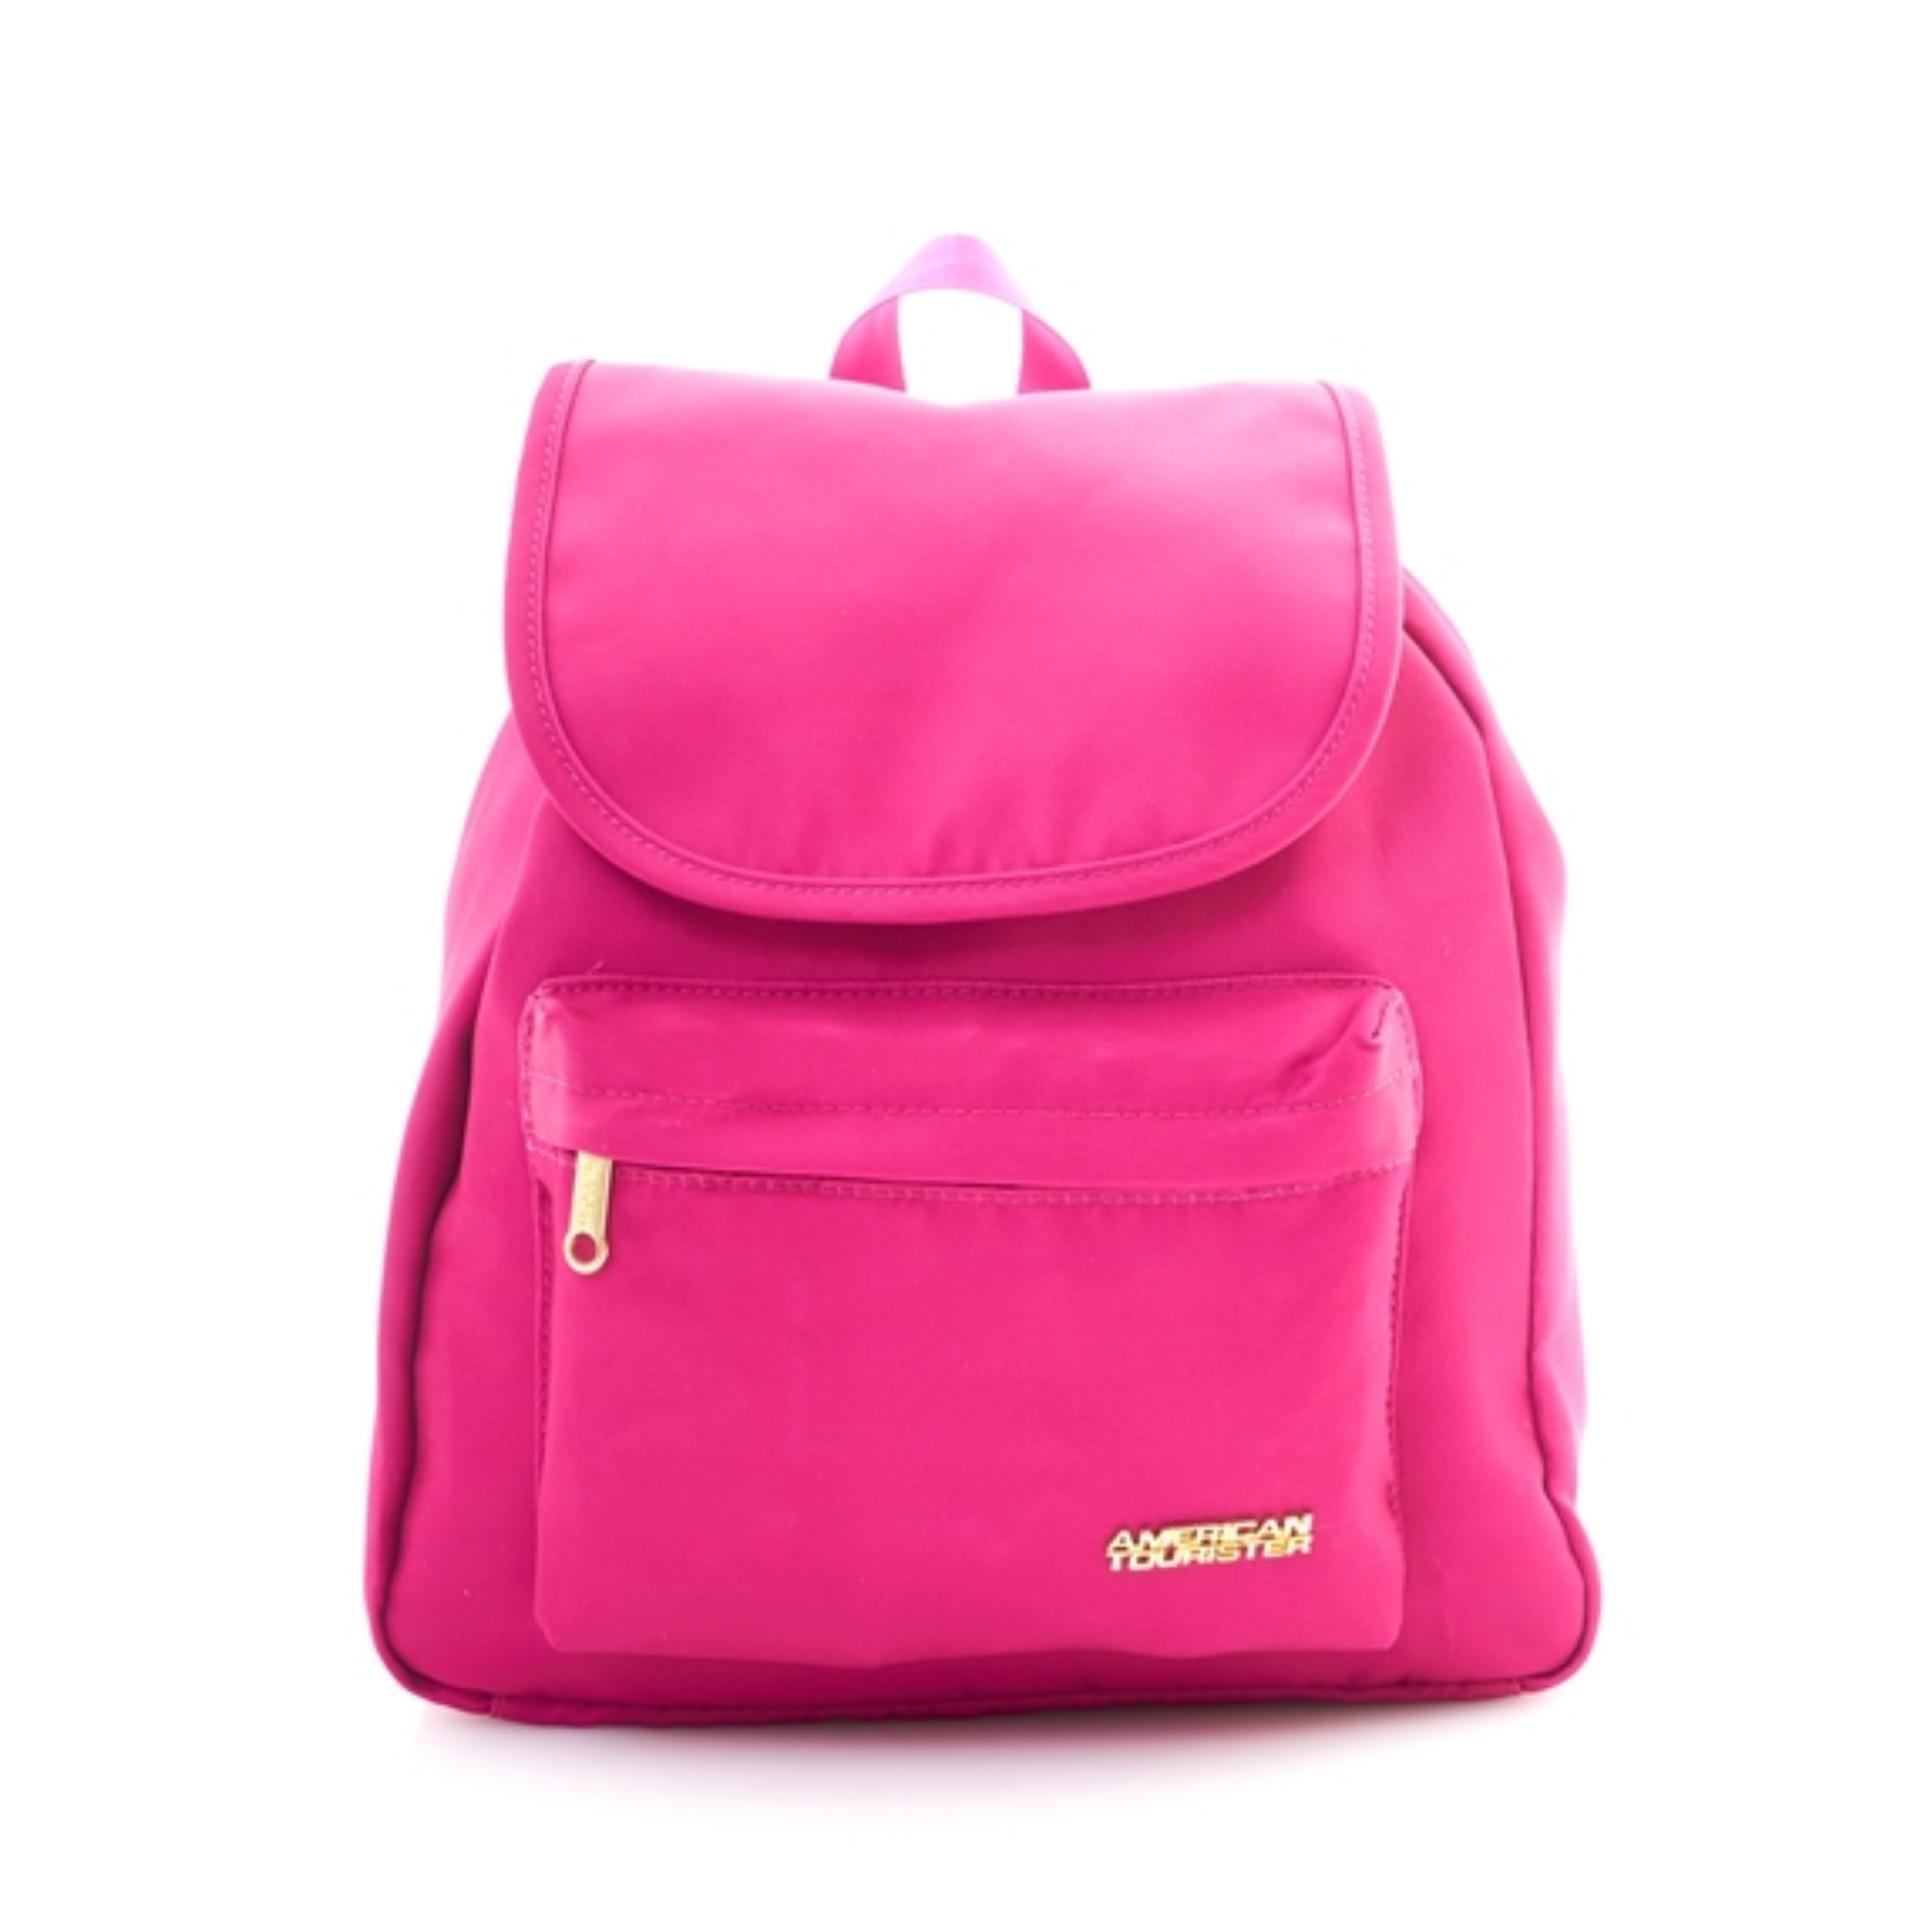 Sale American Tourister Alizee Ii Backpack 01 Fuchsia Online Singapore